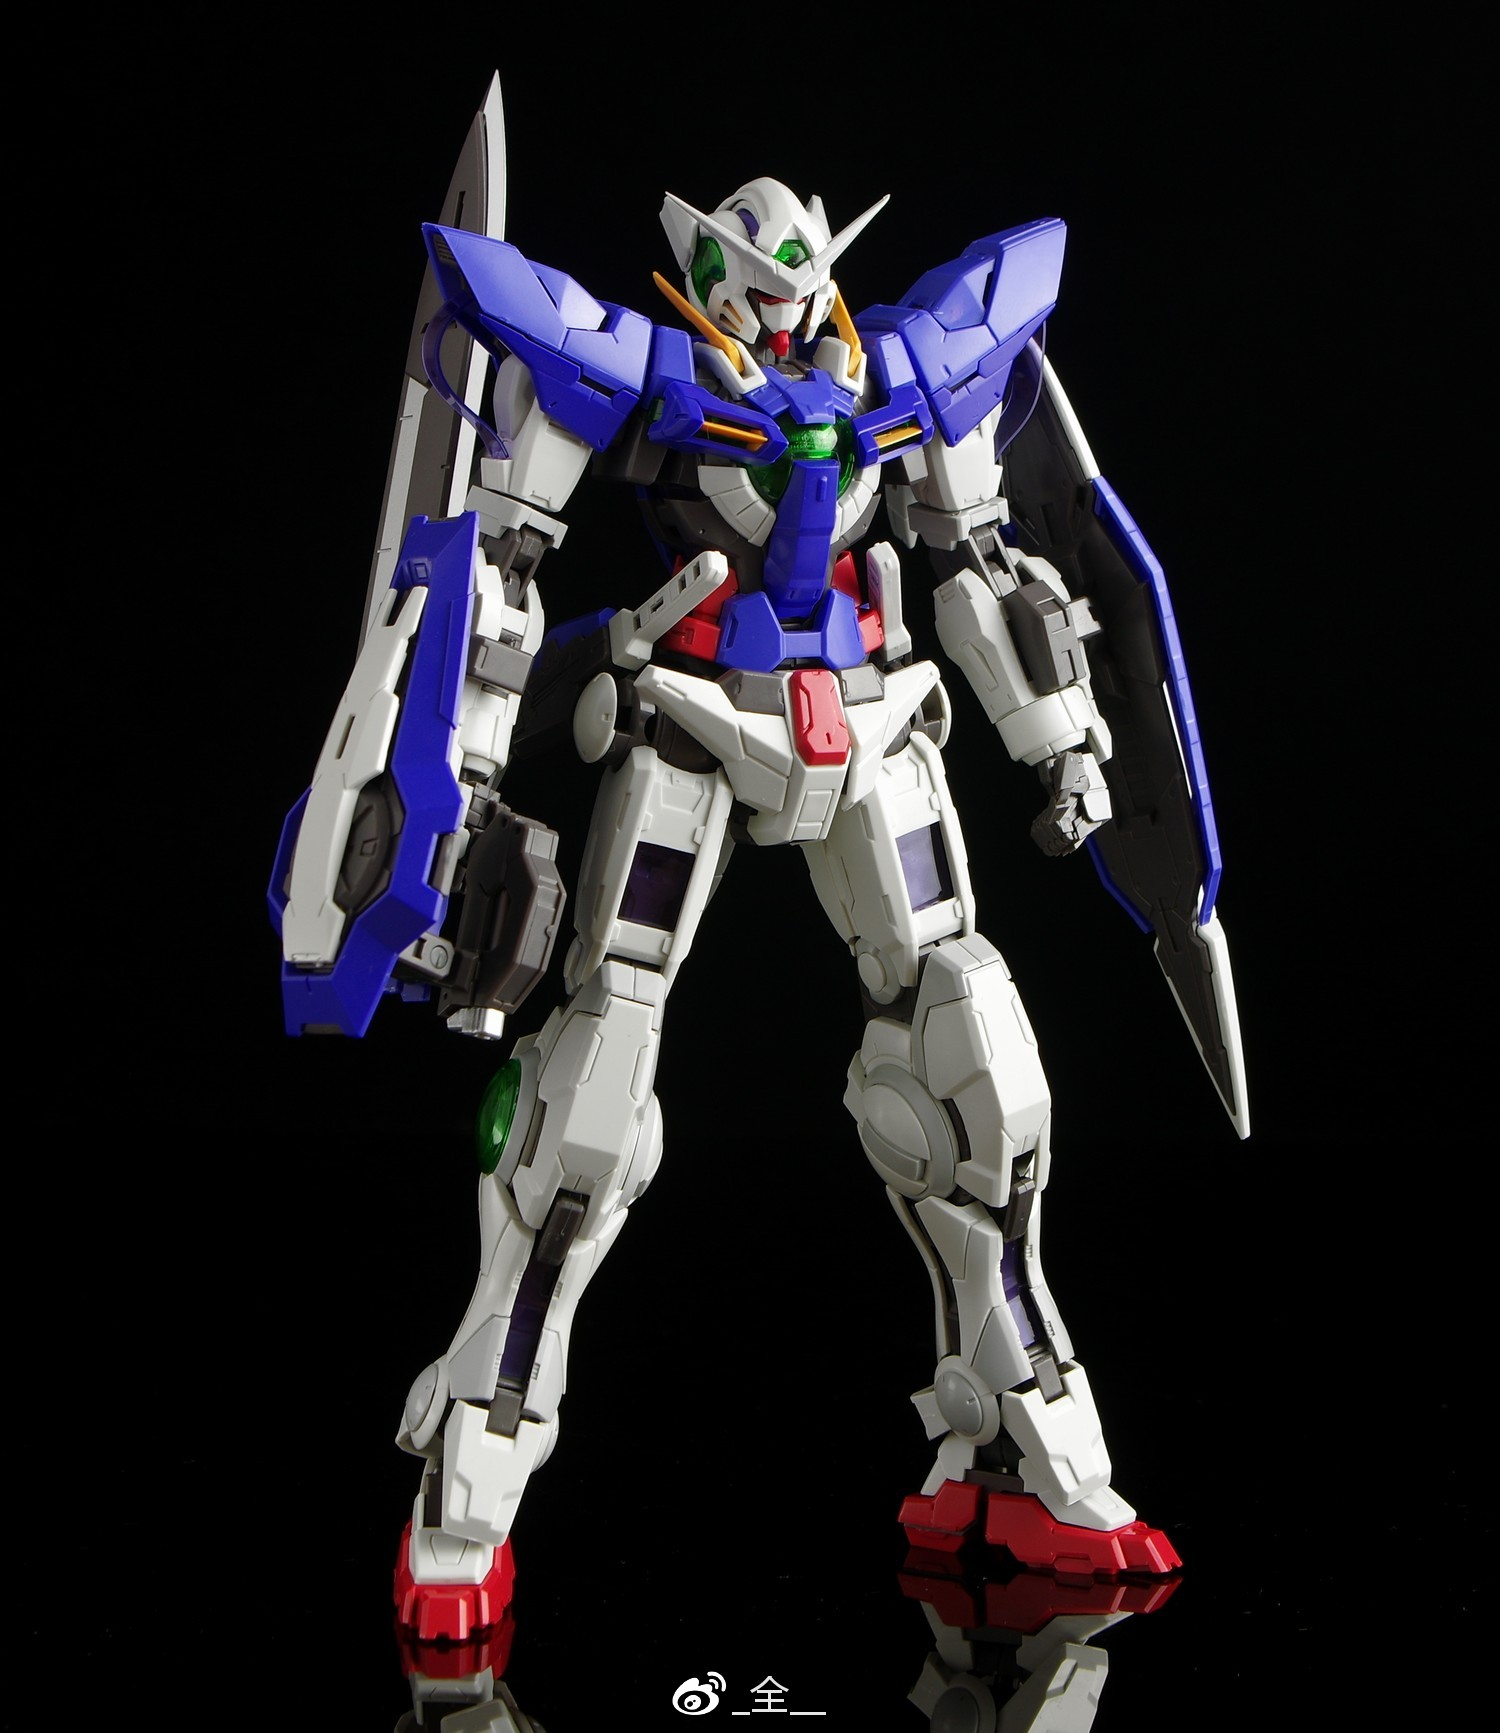 S269_mg_exia_led_hobby_star_inask_066.jpg